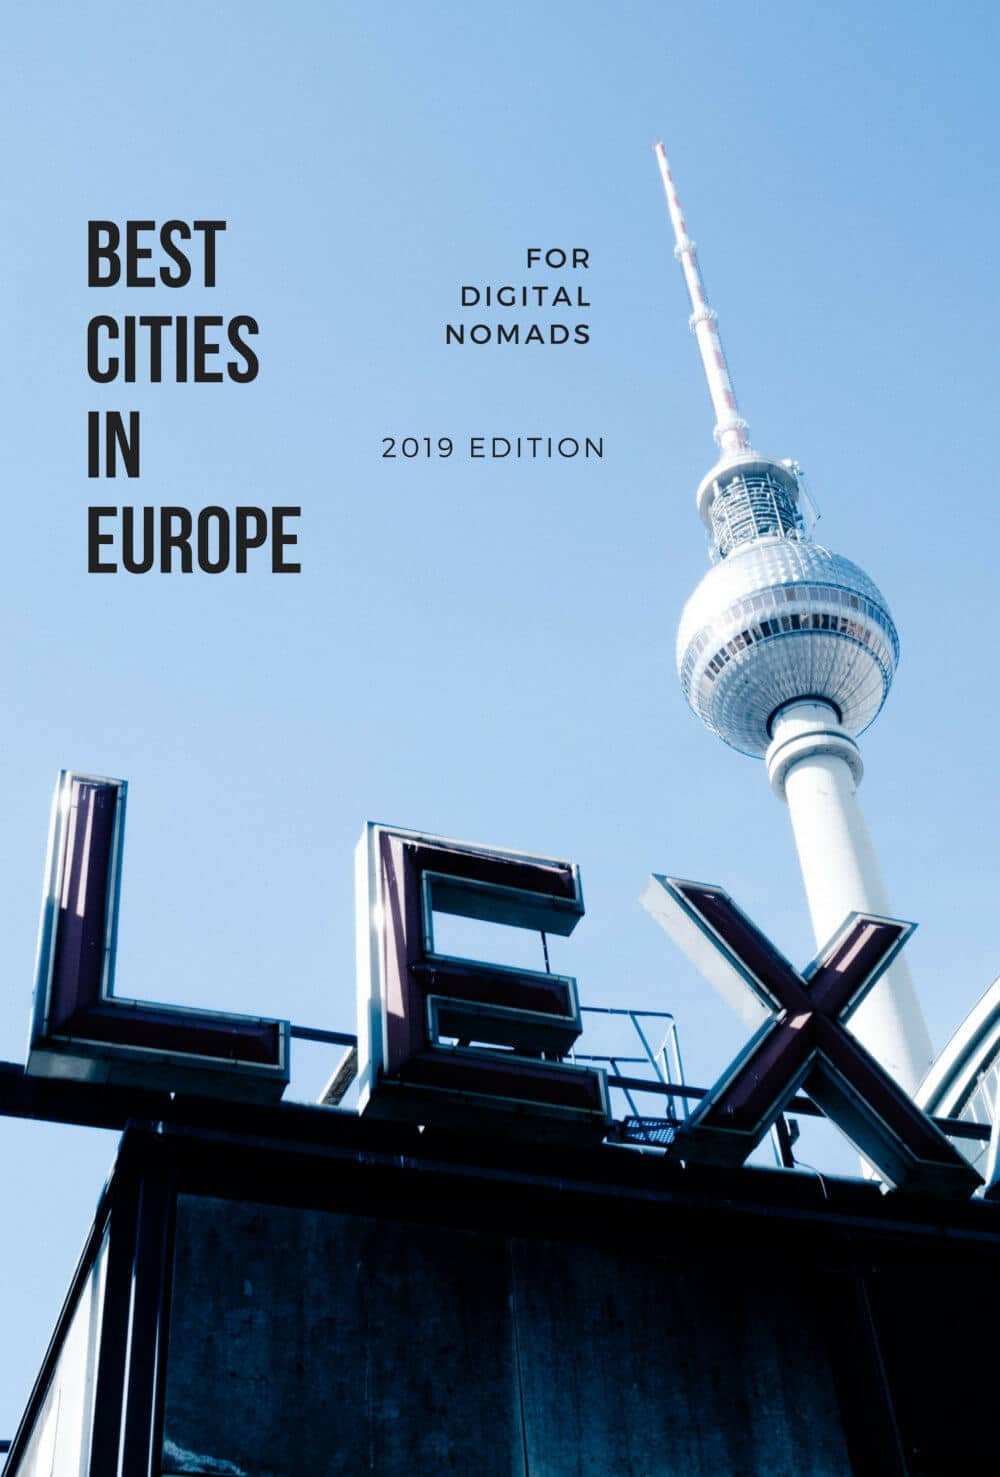 Best Cities in Europe for Digital Nomads